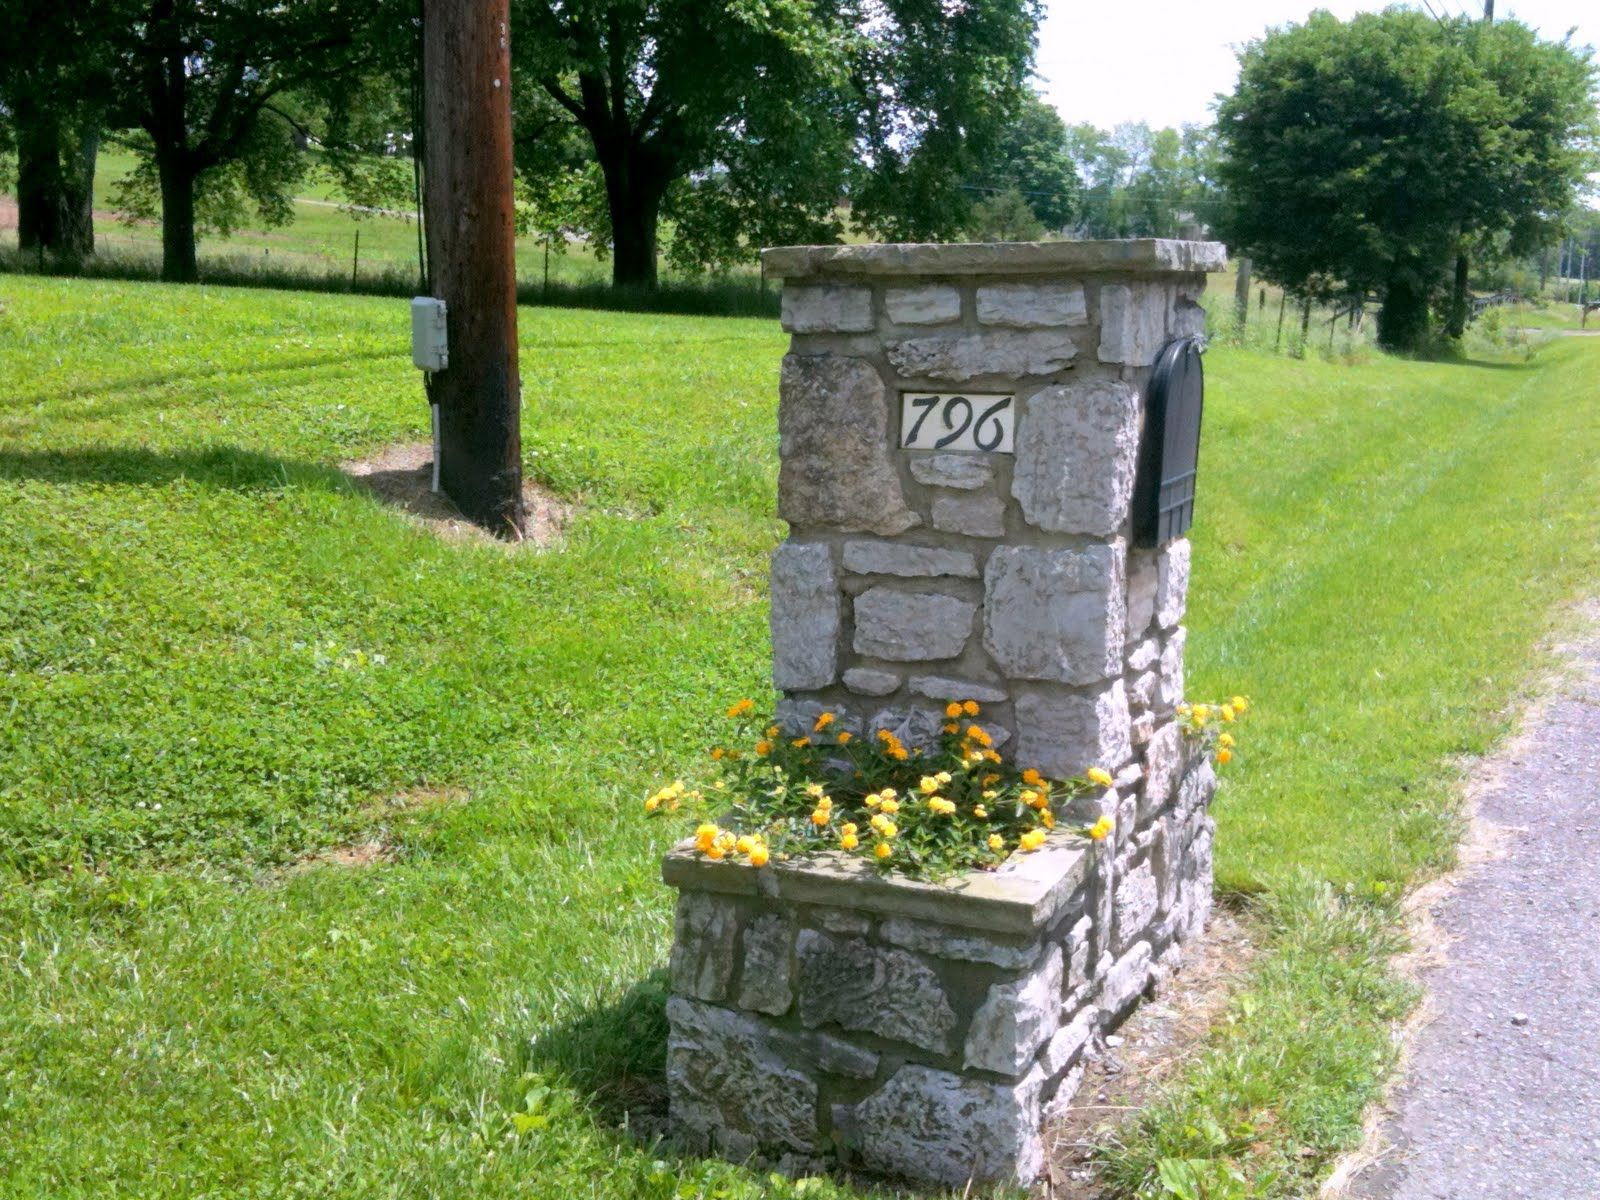 Mailbox Design Ideas find this pin and more on ideas for front yard look at our new mailbox design Stone Mailbox Ideas Stone Mailbox Designs